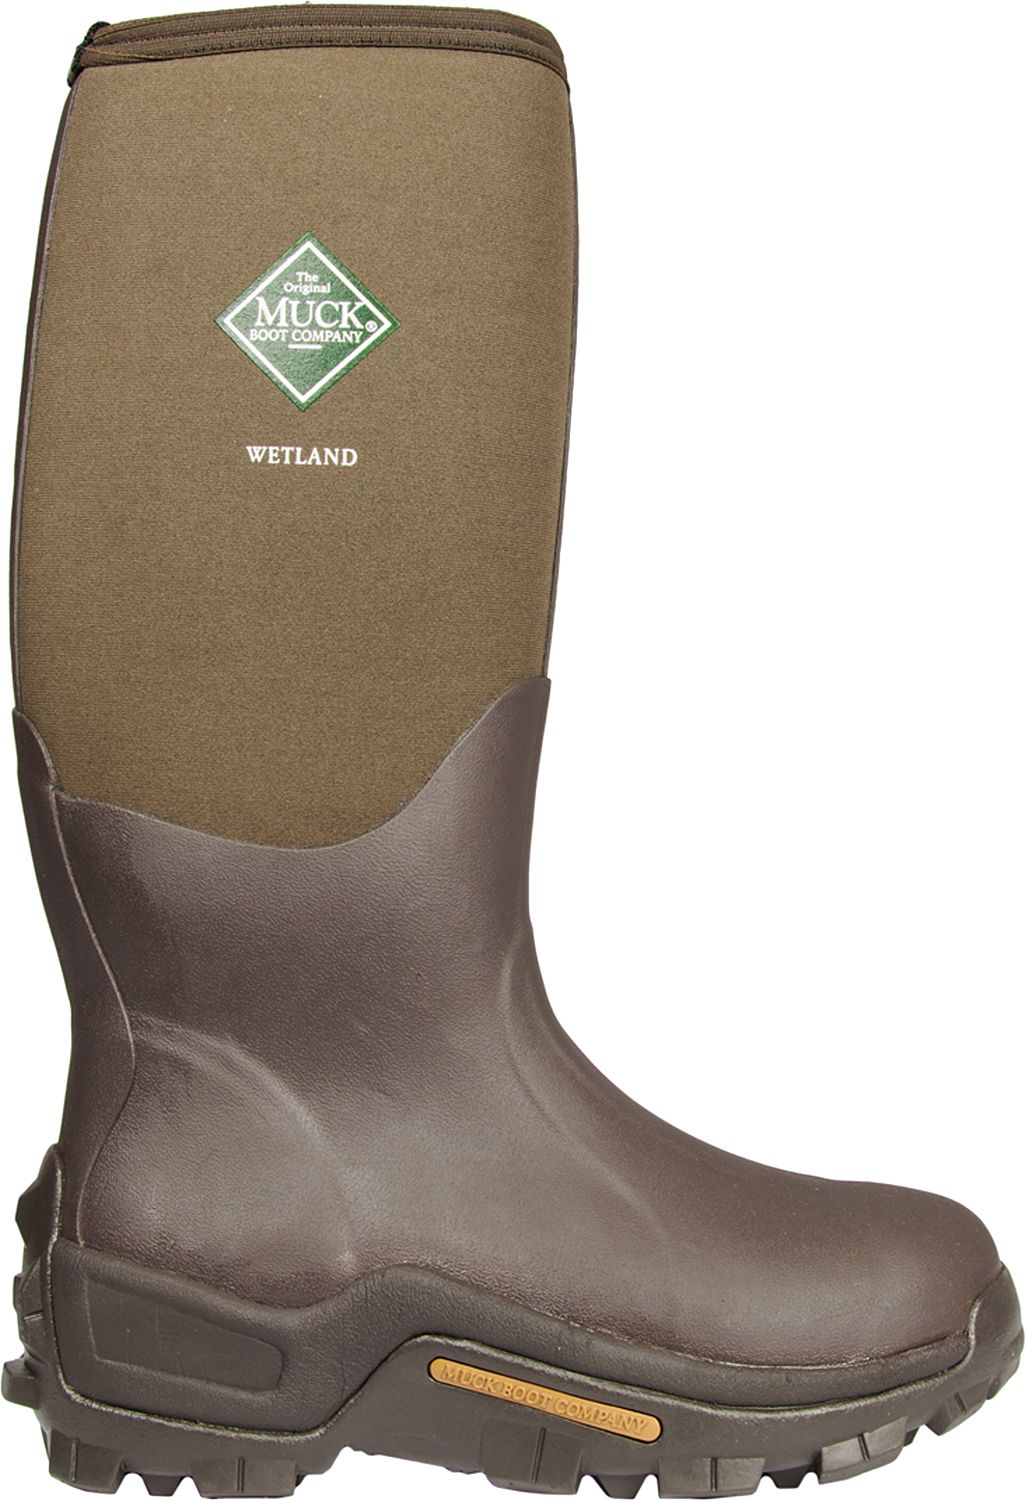 Muck Boot Company Men's Wetland Rubber Hunting Boots| DICK'S ...